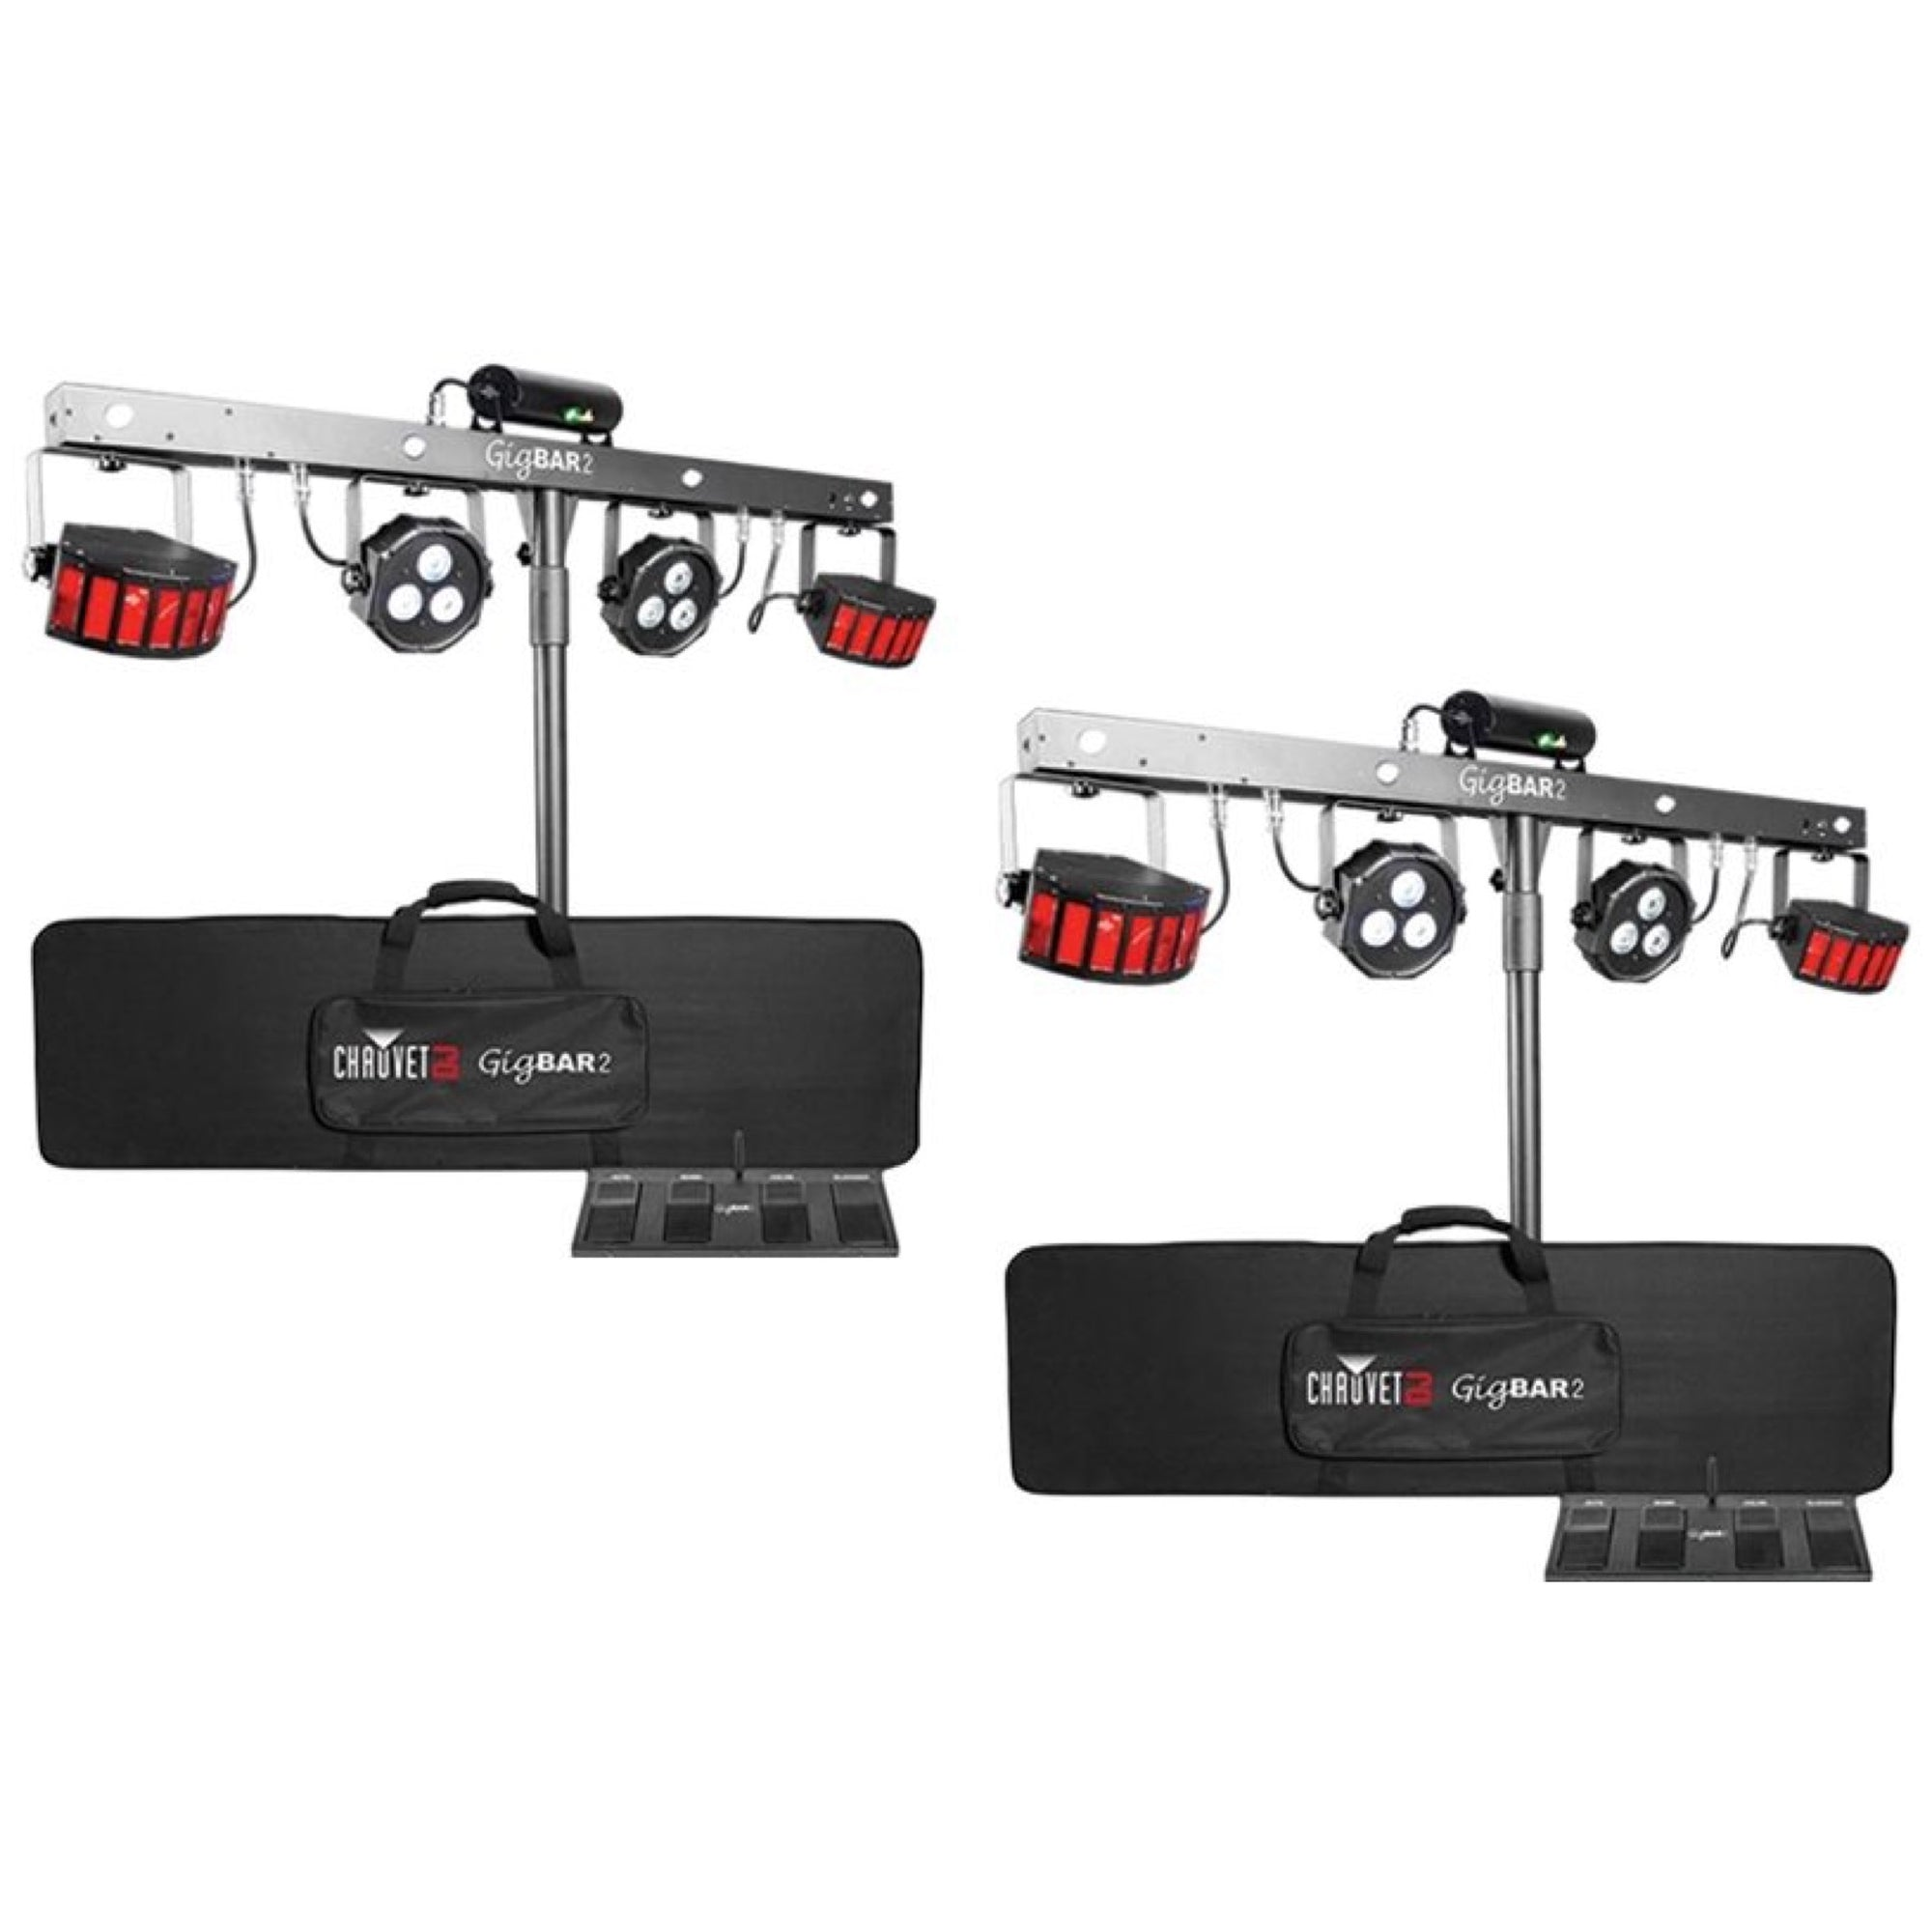 Chauvet DJ GigBar 2 Lighting System, Pair